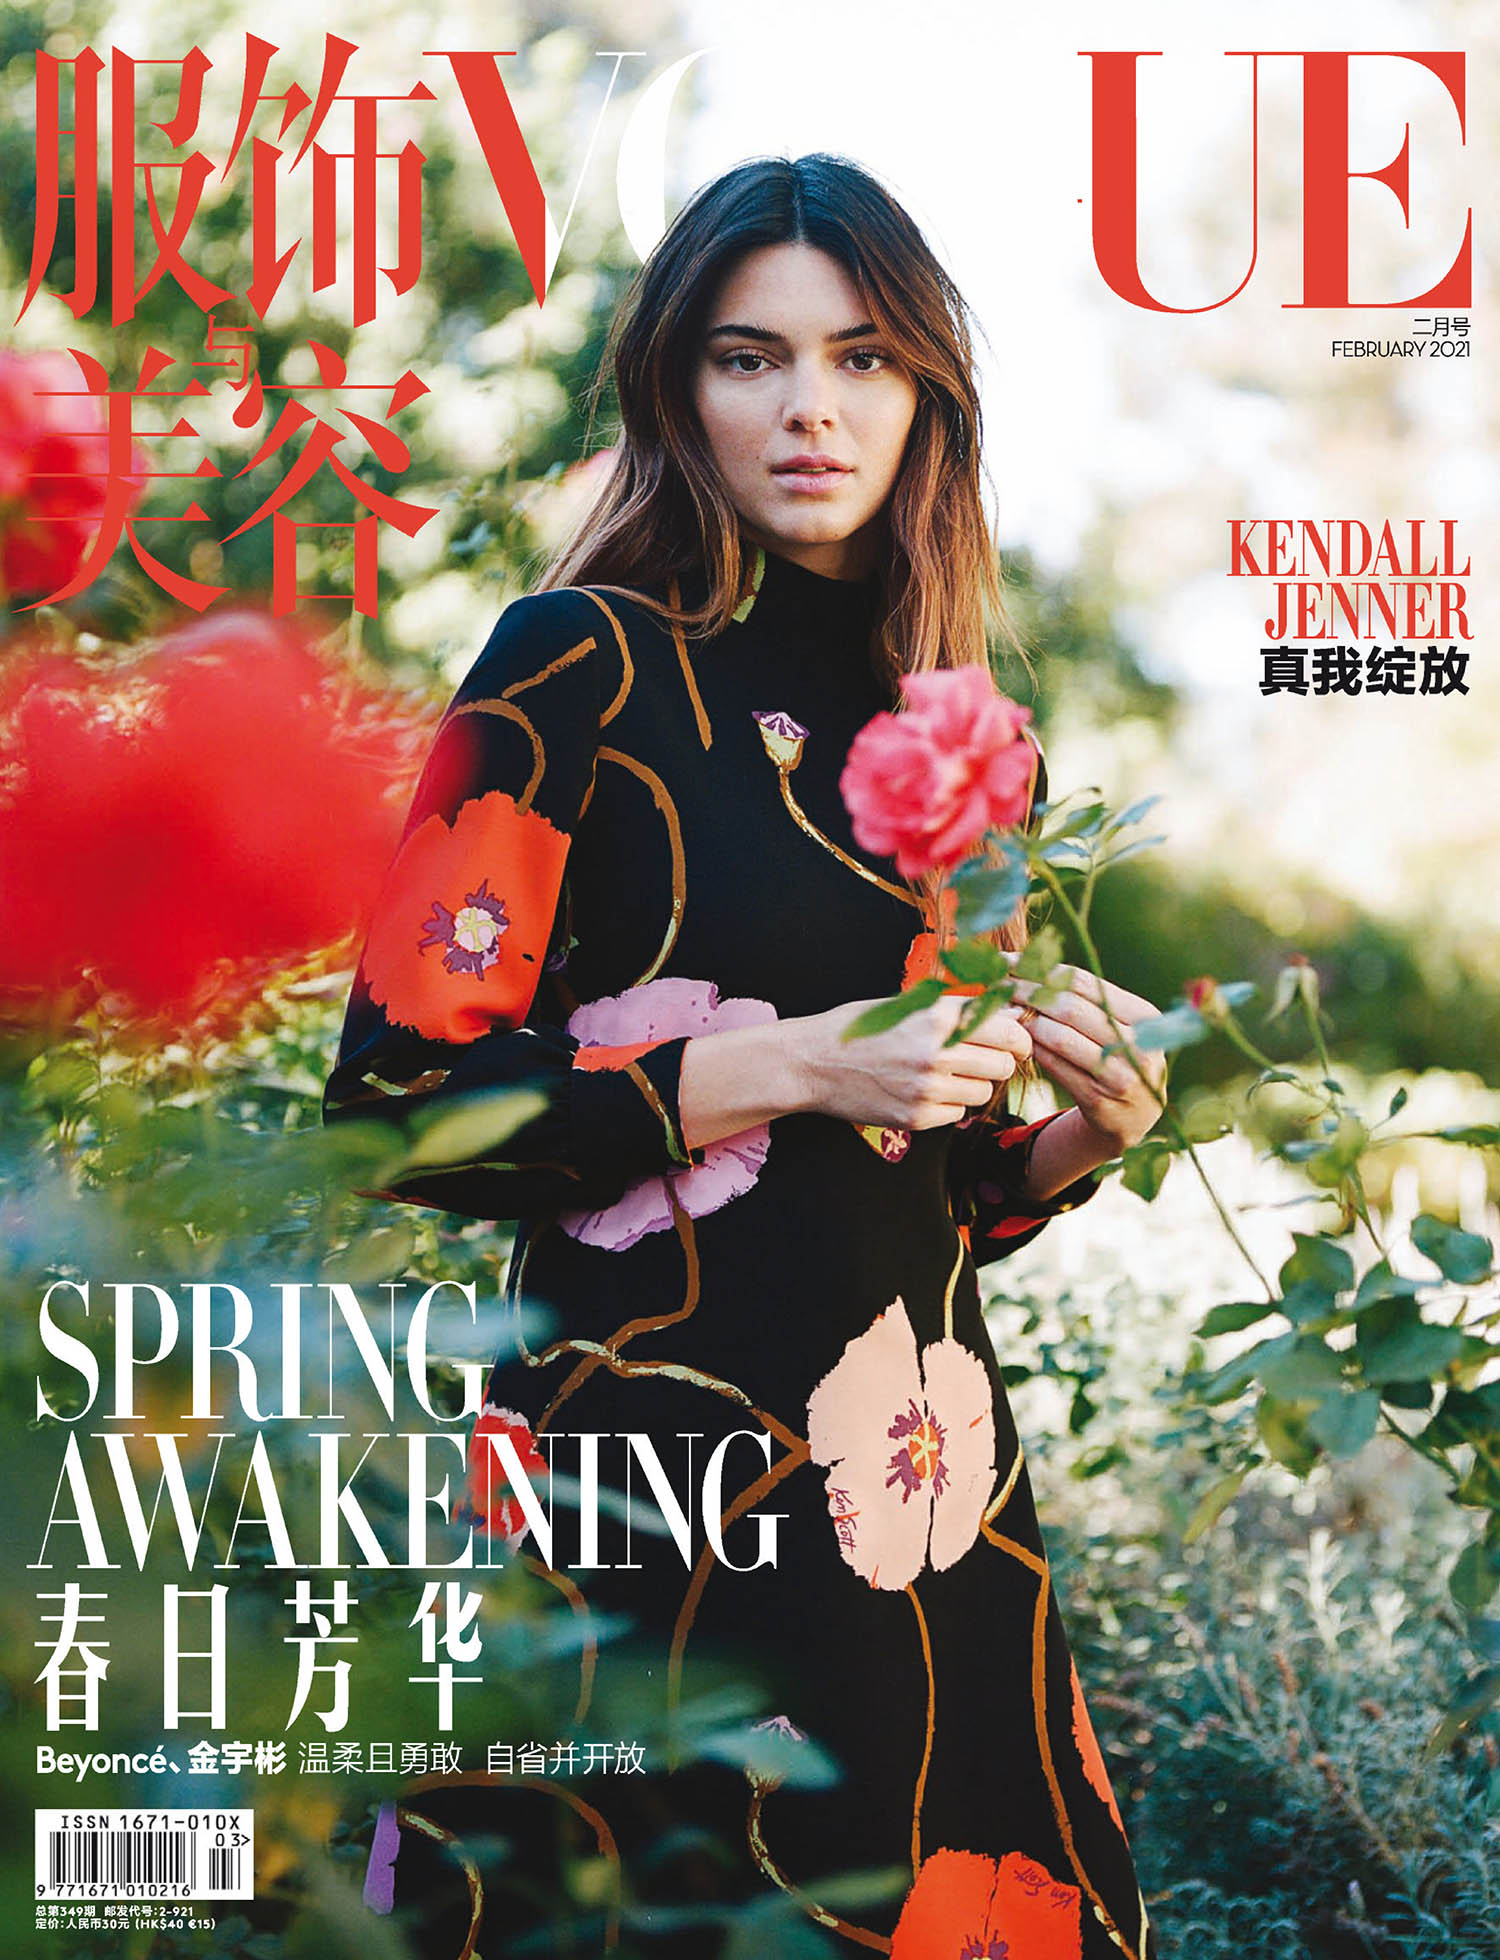 Kendall Jenner covers Vogue China February 2021 by Autumn de Wilde